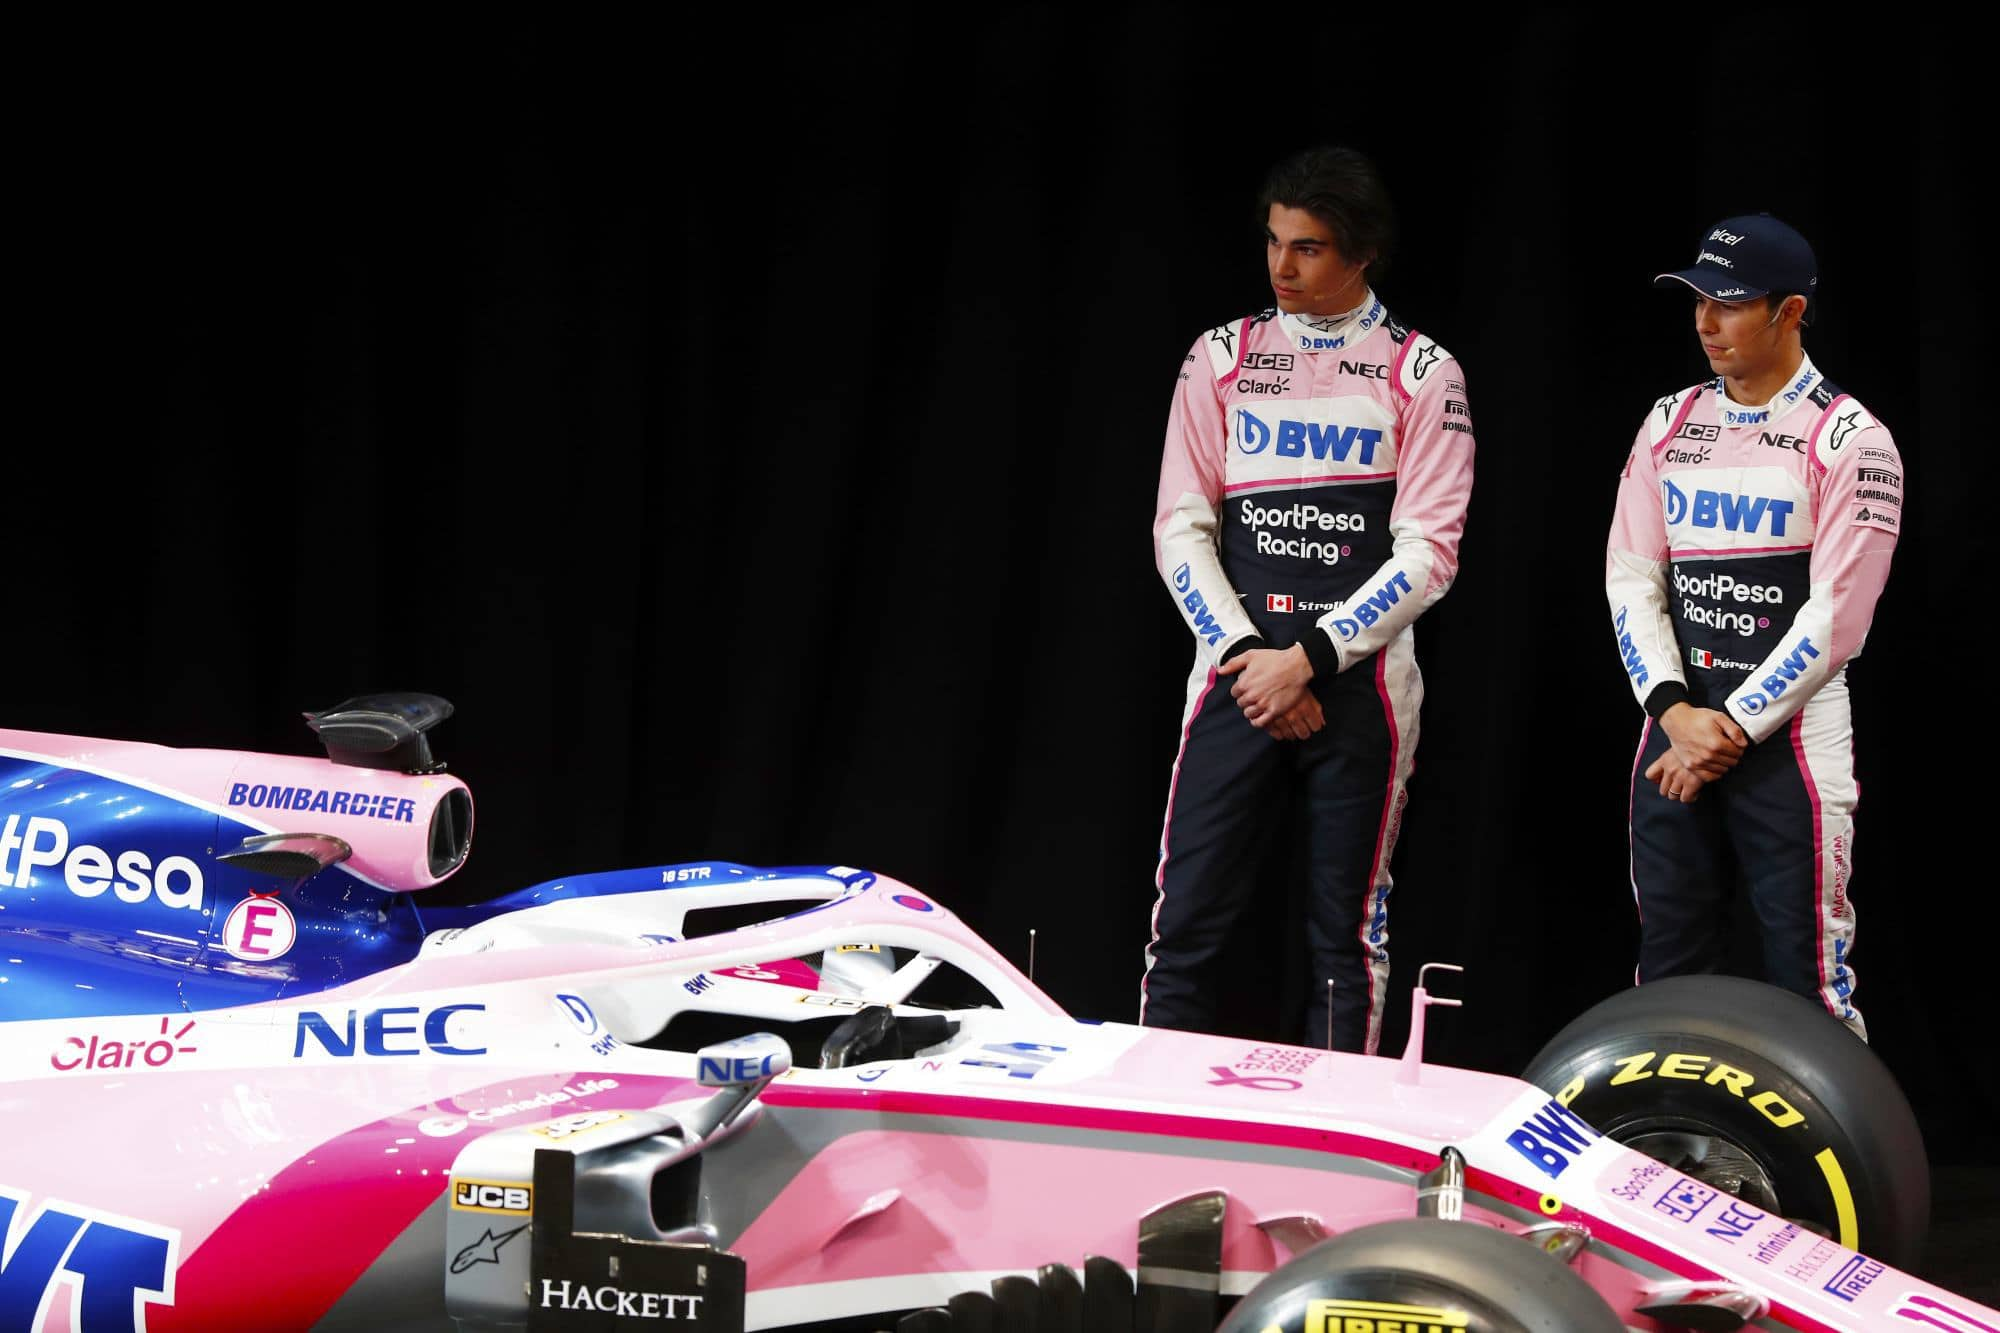 Sport Pesa Racing Point 2019 F1 launch Toronto Perez and Stroll Photo Racing Point